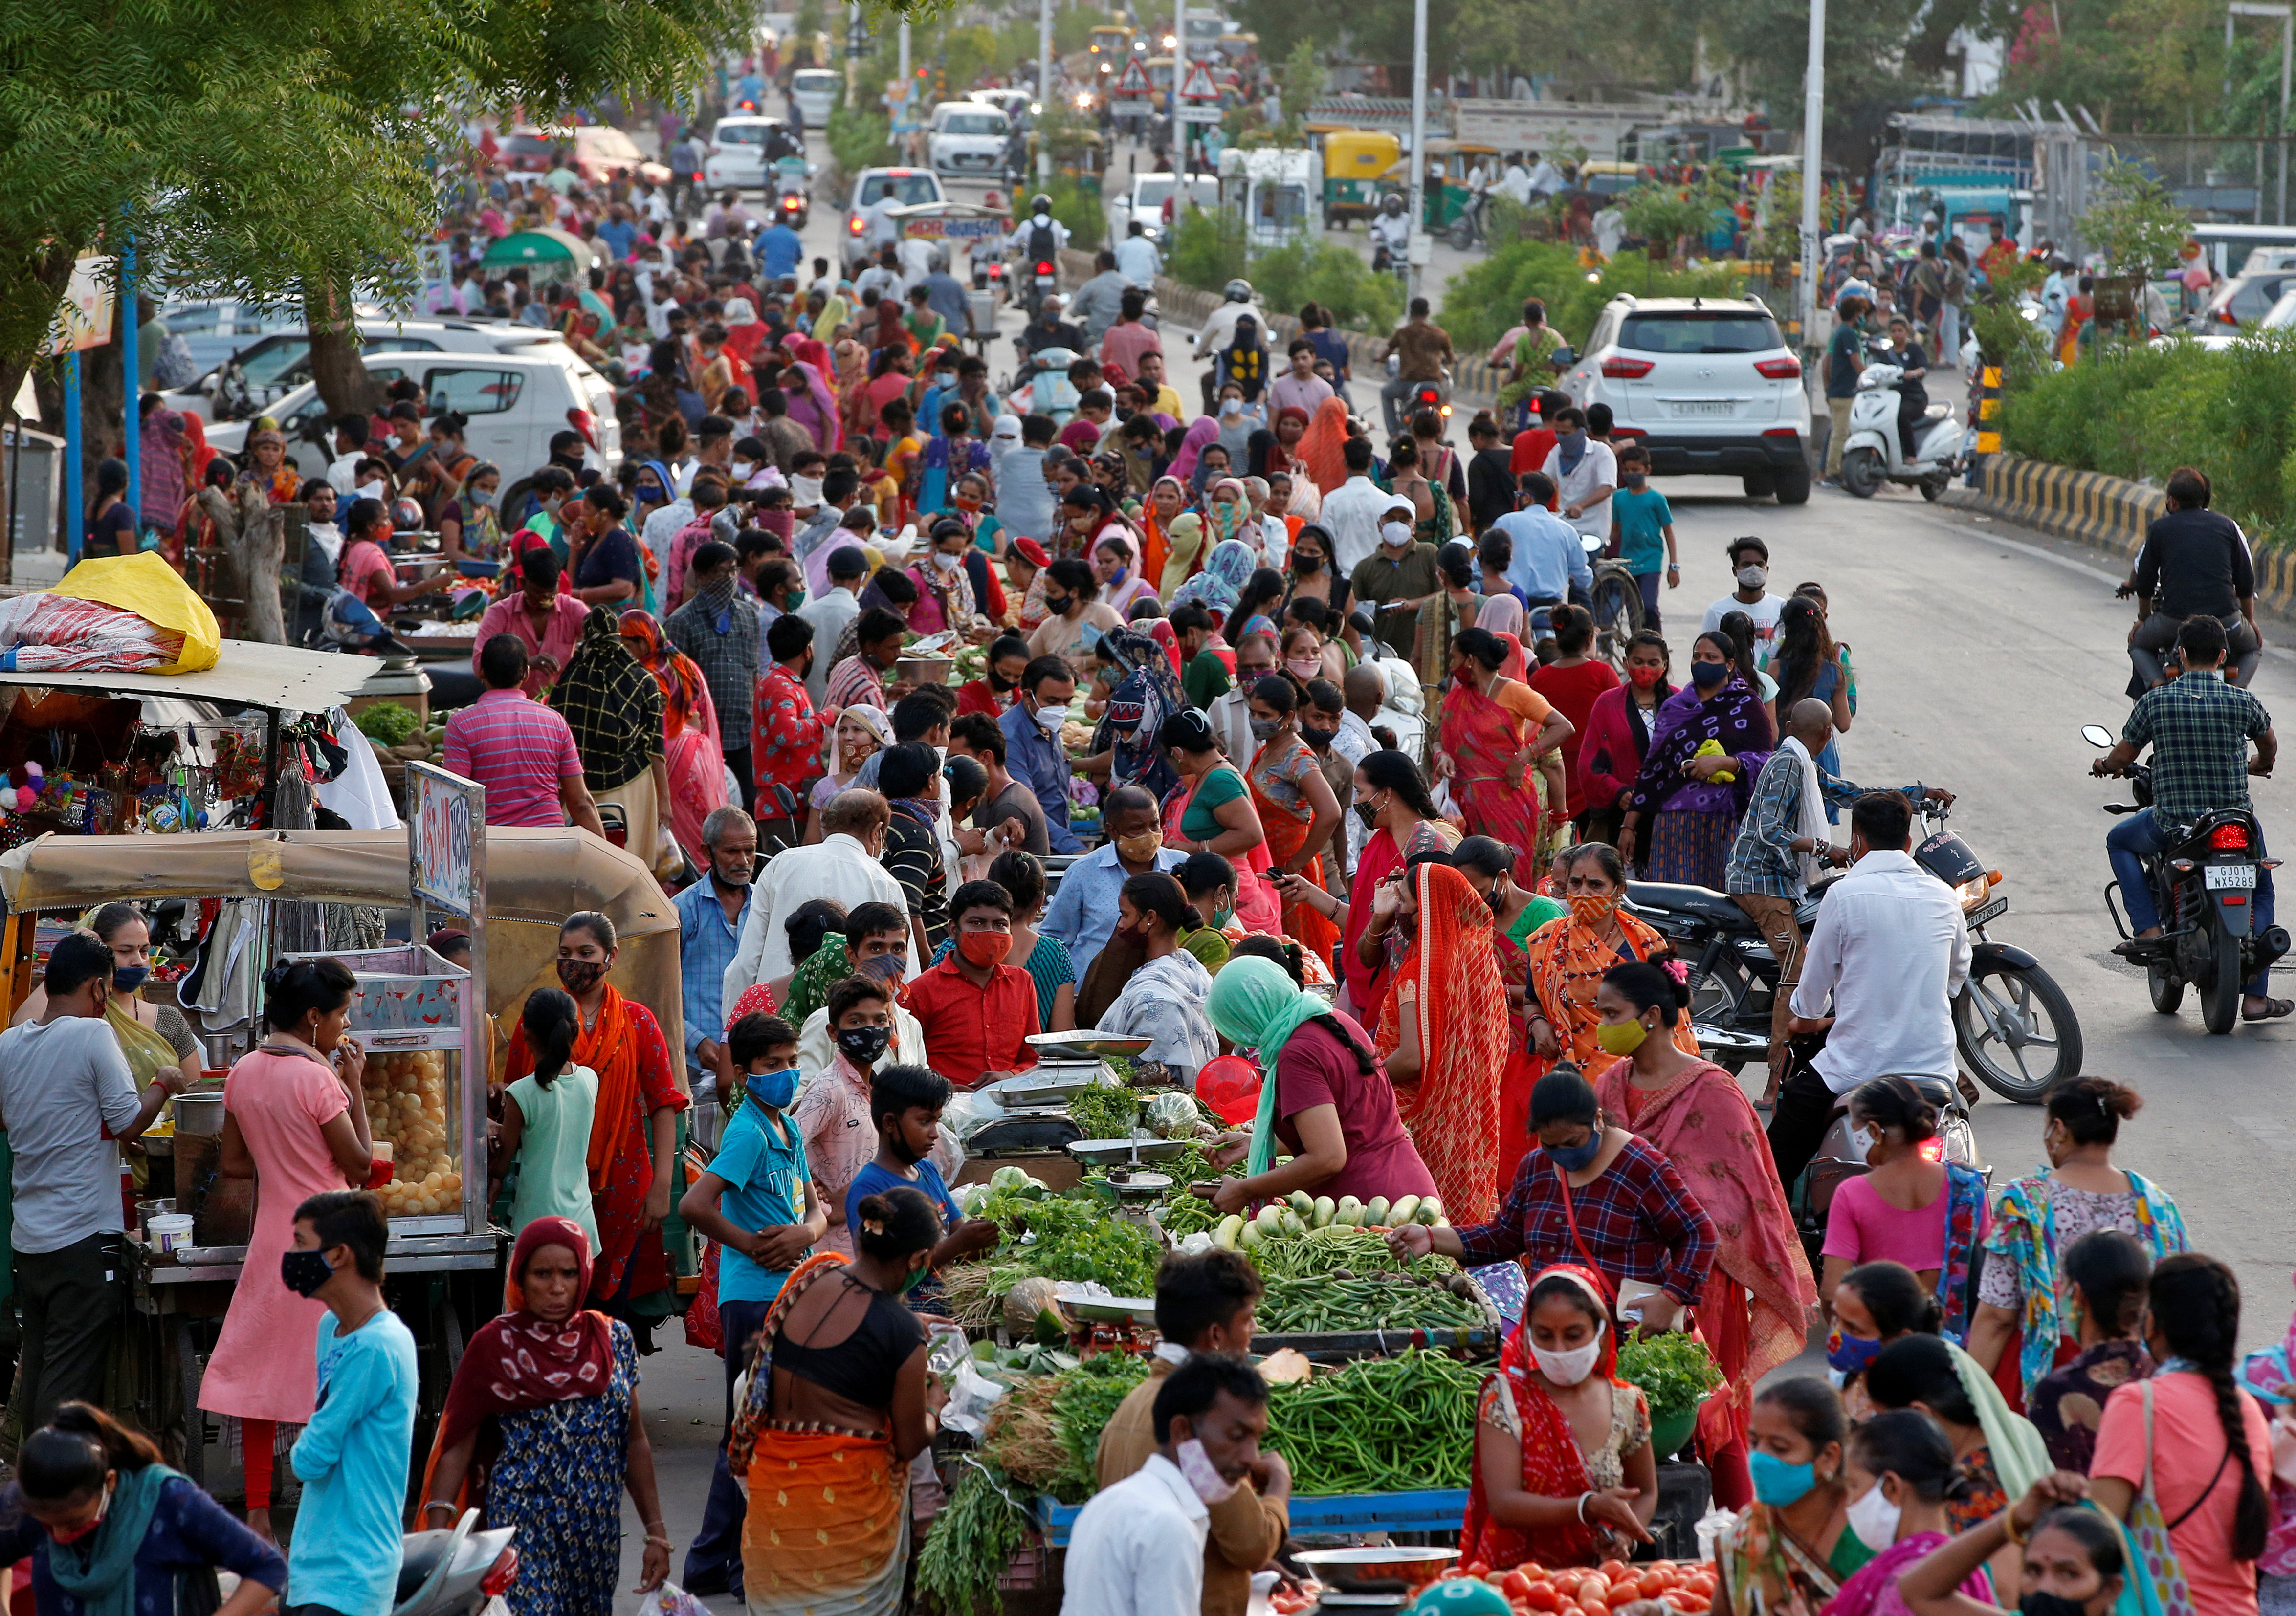 People shop at a crowded roadside vegetable market after authorities eased coronavirus restrictions, following a drop in COVID-19 cases in Ahmedabad, India, June 15, 2021. REUTERS/Amit Dave/Files